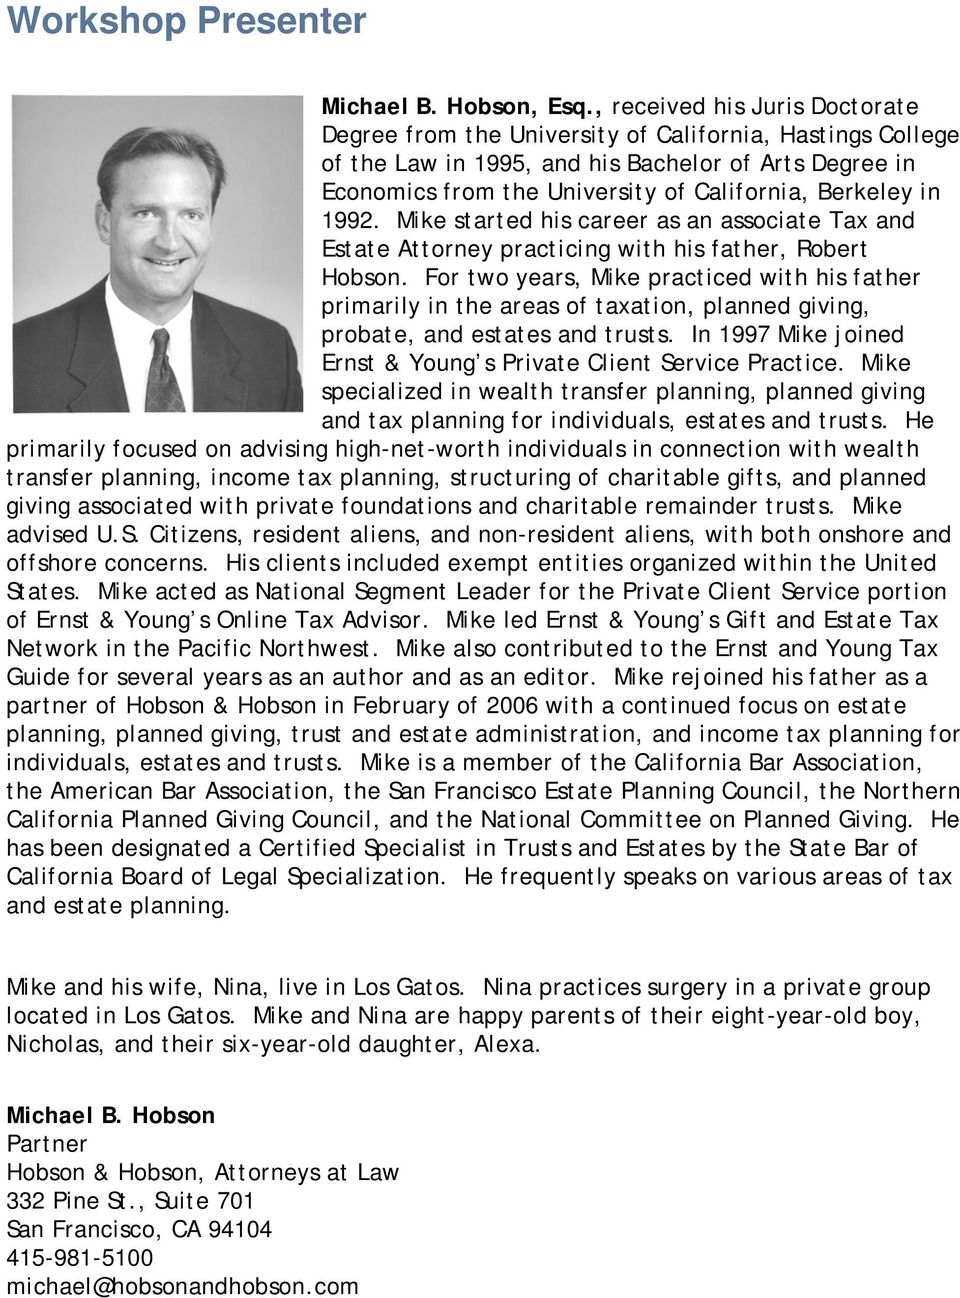 in 1992. Mike started his career as an associate Tax and Estate Attorney practicing with his father, Robert Hobson.